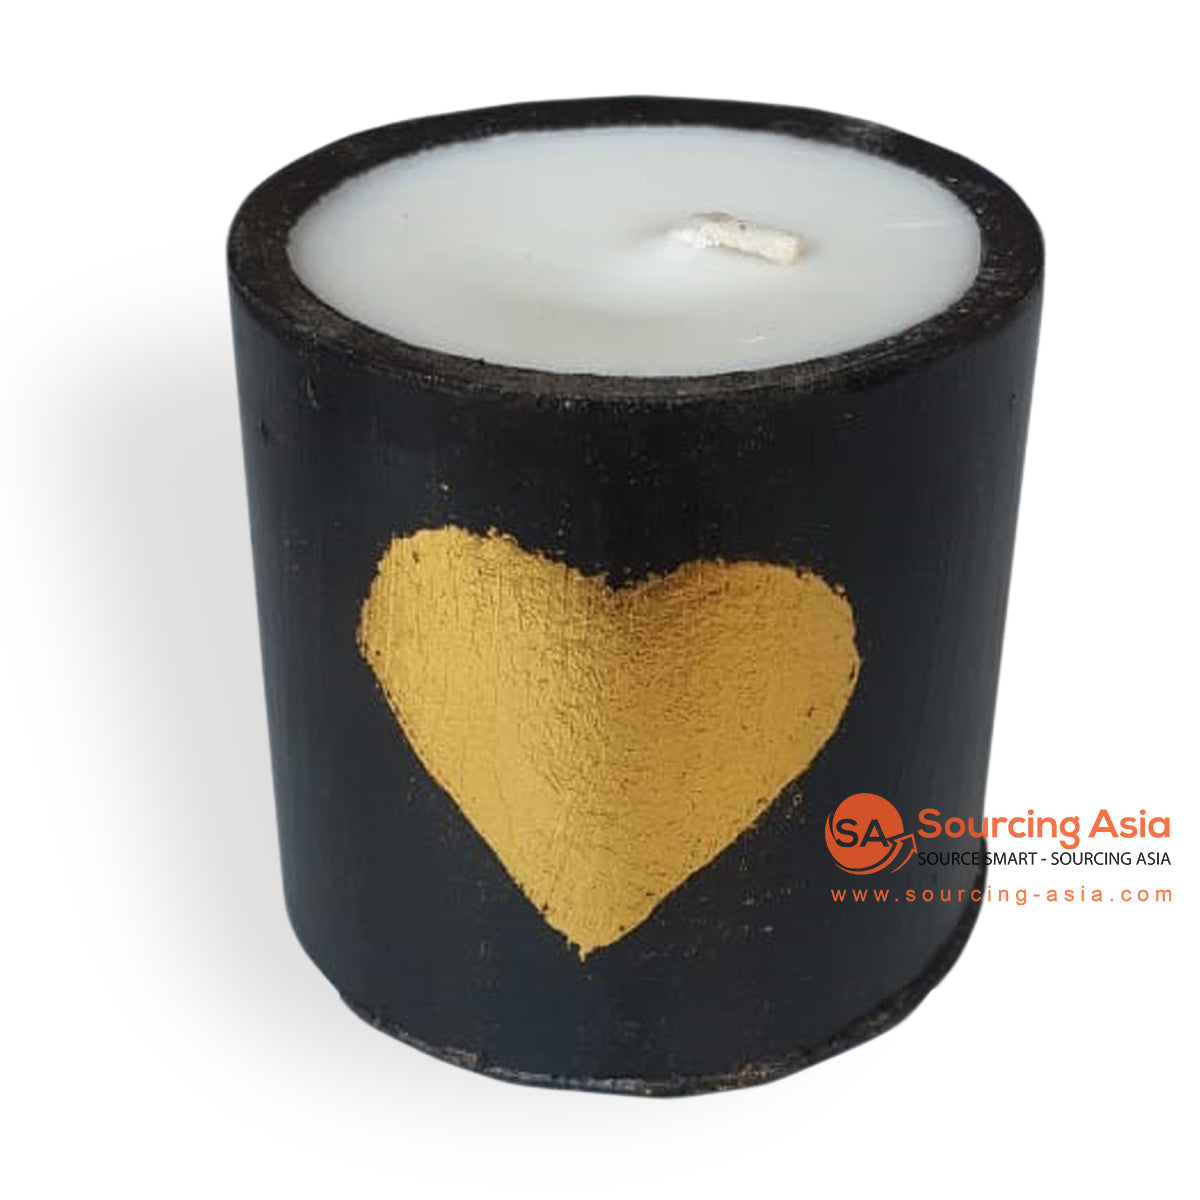 BSC028-1 CANDLE HOLDER